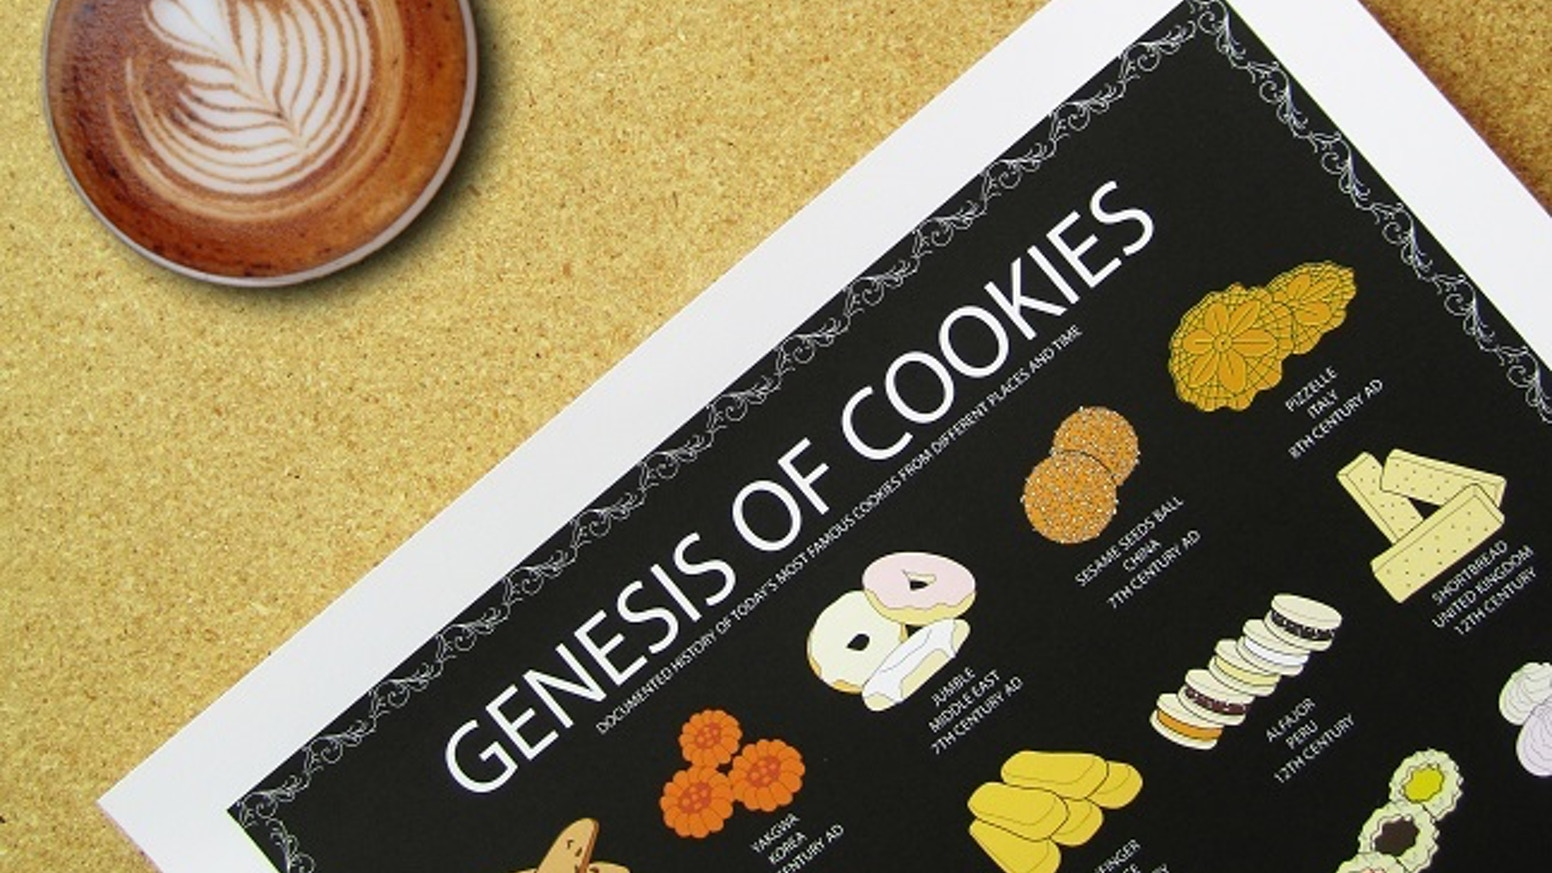 A Poster that illustrates Origin of Today's Most Famous Cookies. It will be a nice gift for Baking Enthusiasts and Cookie Lovers.